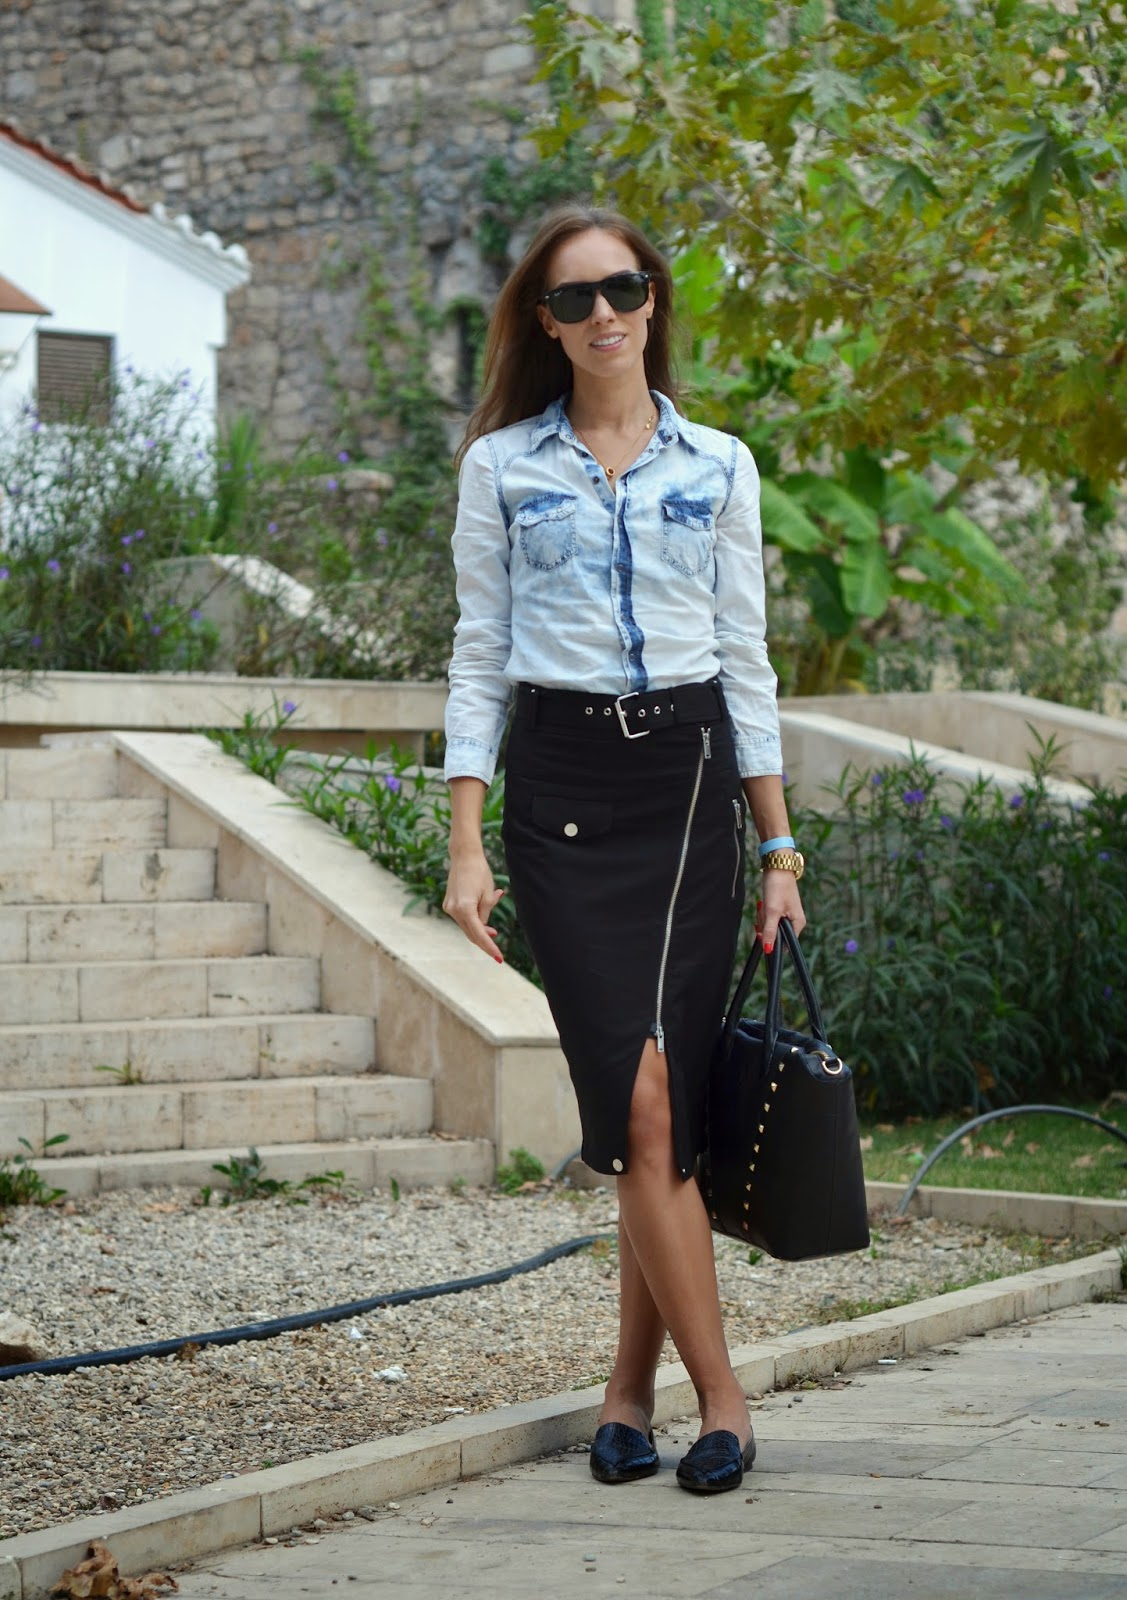 denim-shirt-pencil-skirt-outfit kristjaana mere